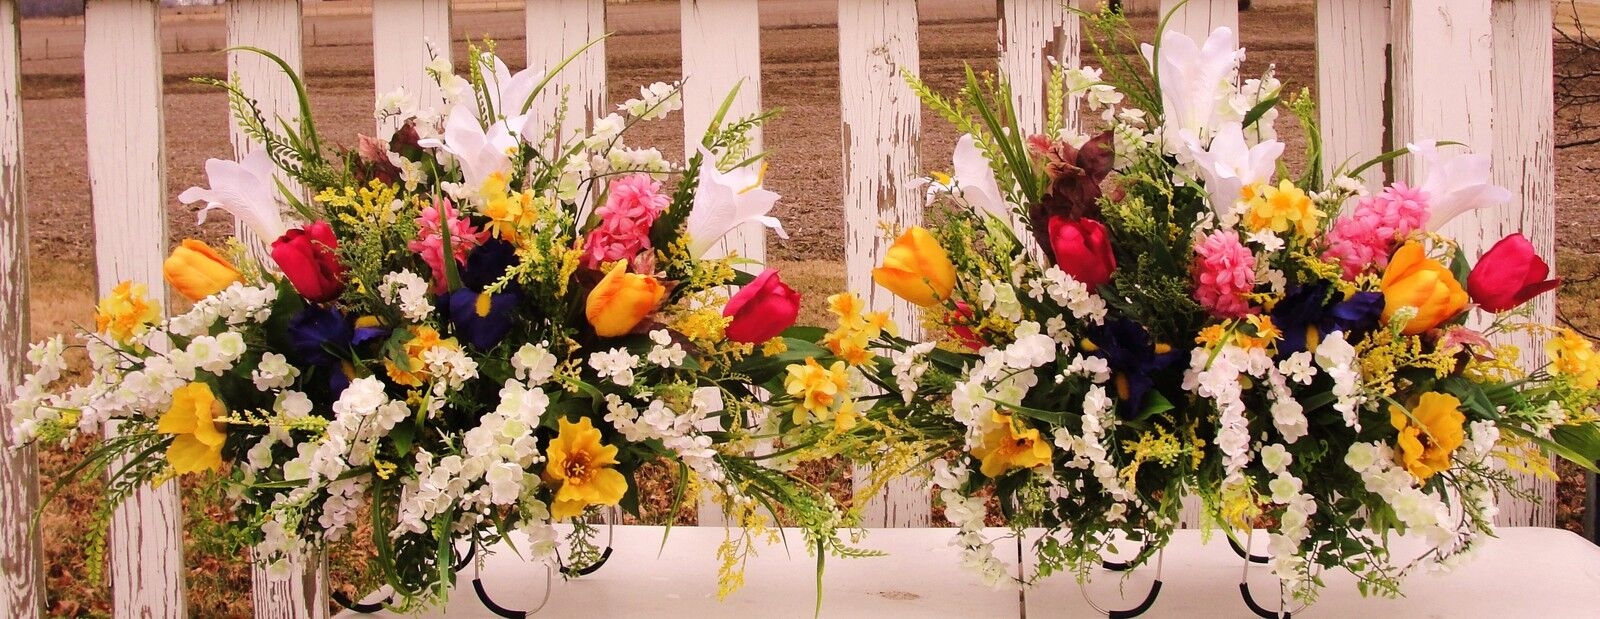 Church and Altar Arrangements. - SILKBOUQUETS.COM is a Family